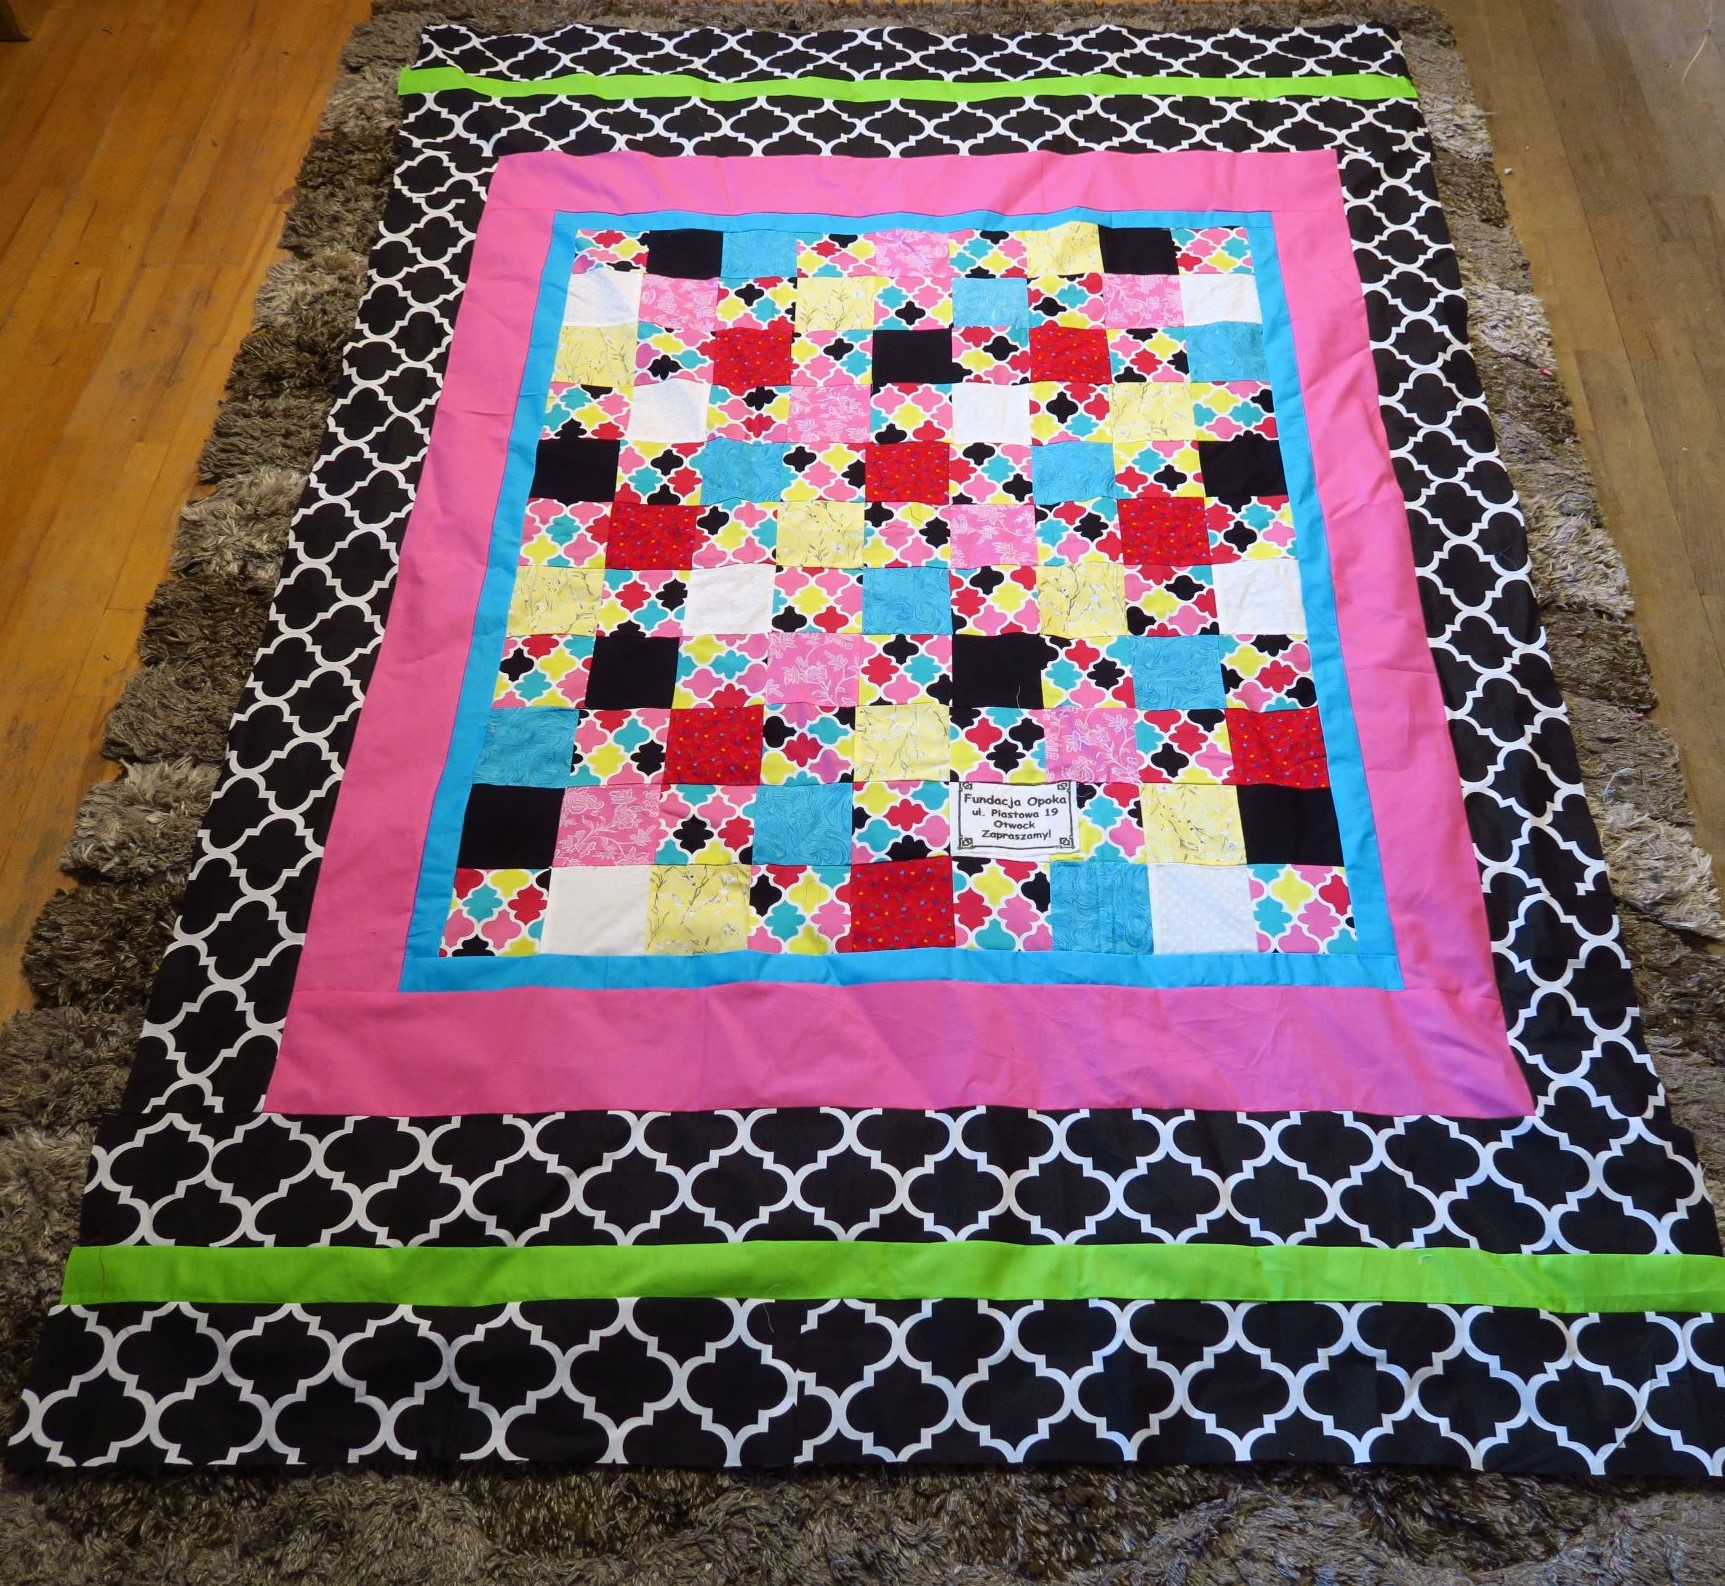 Fran made the center of the top - I added the borders